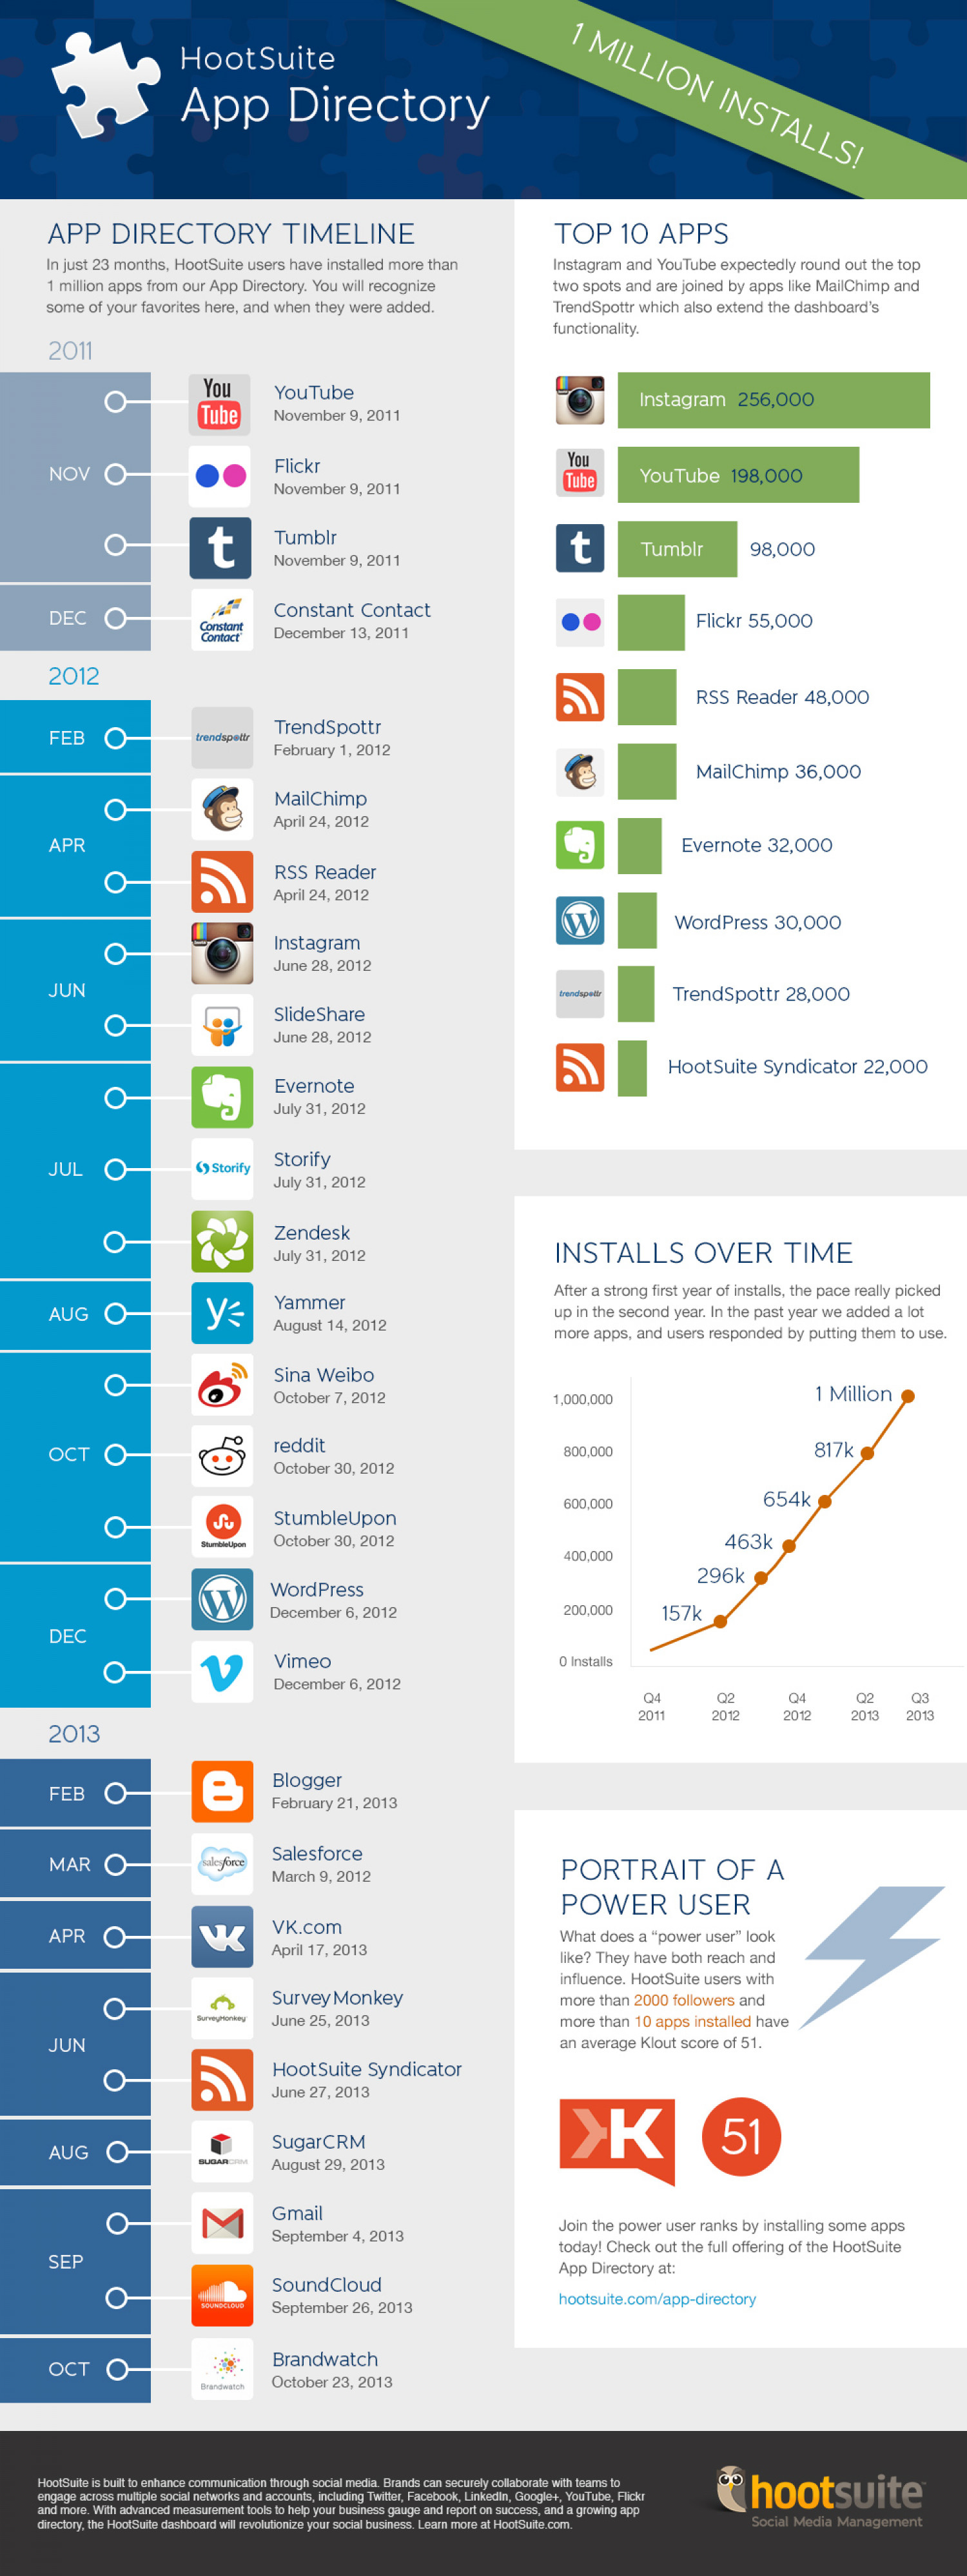 Hootsuite App Directory Infographic